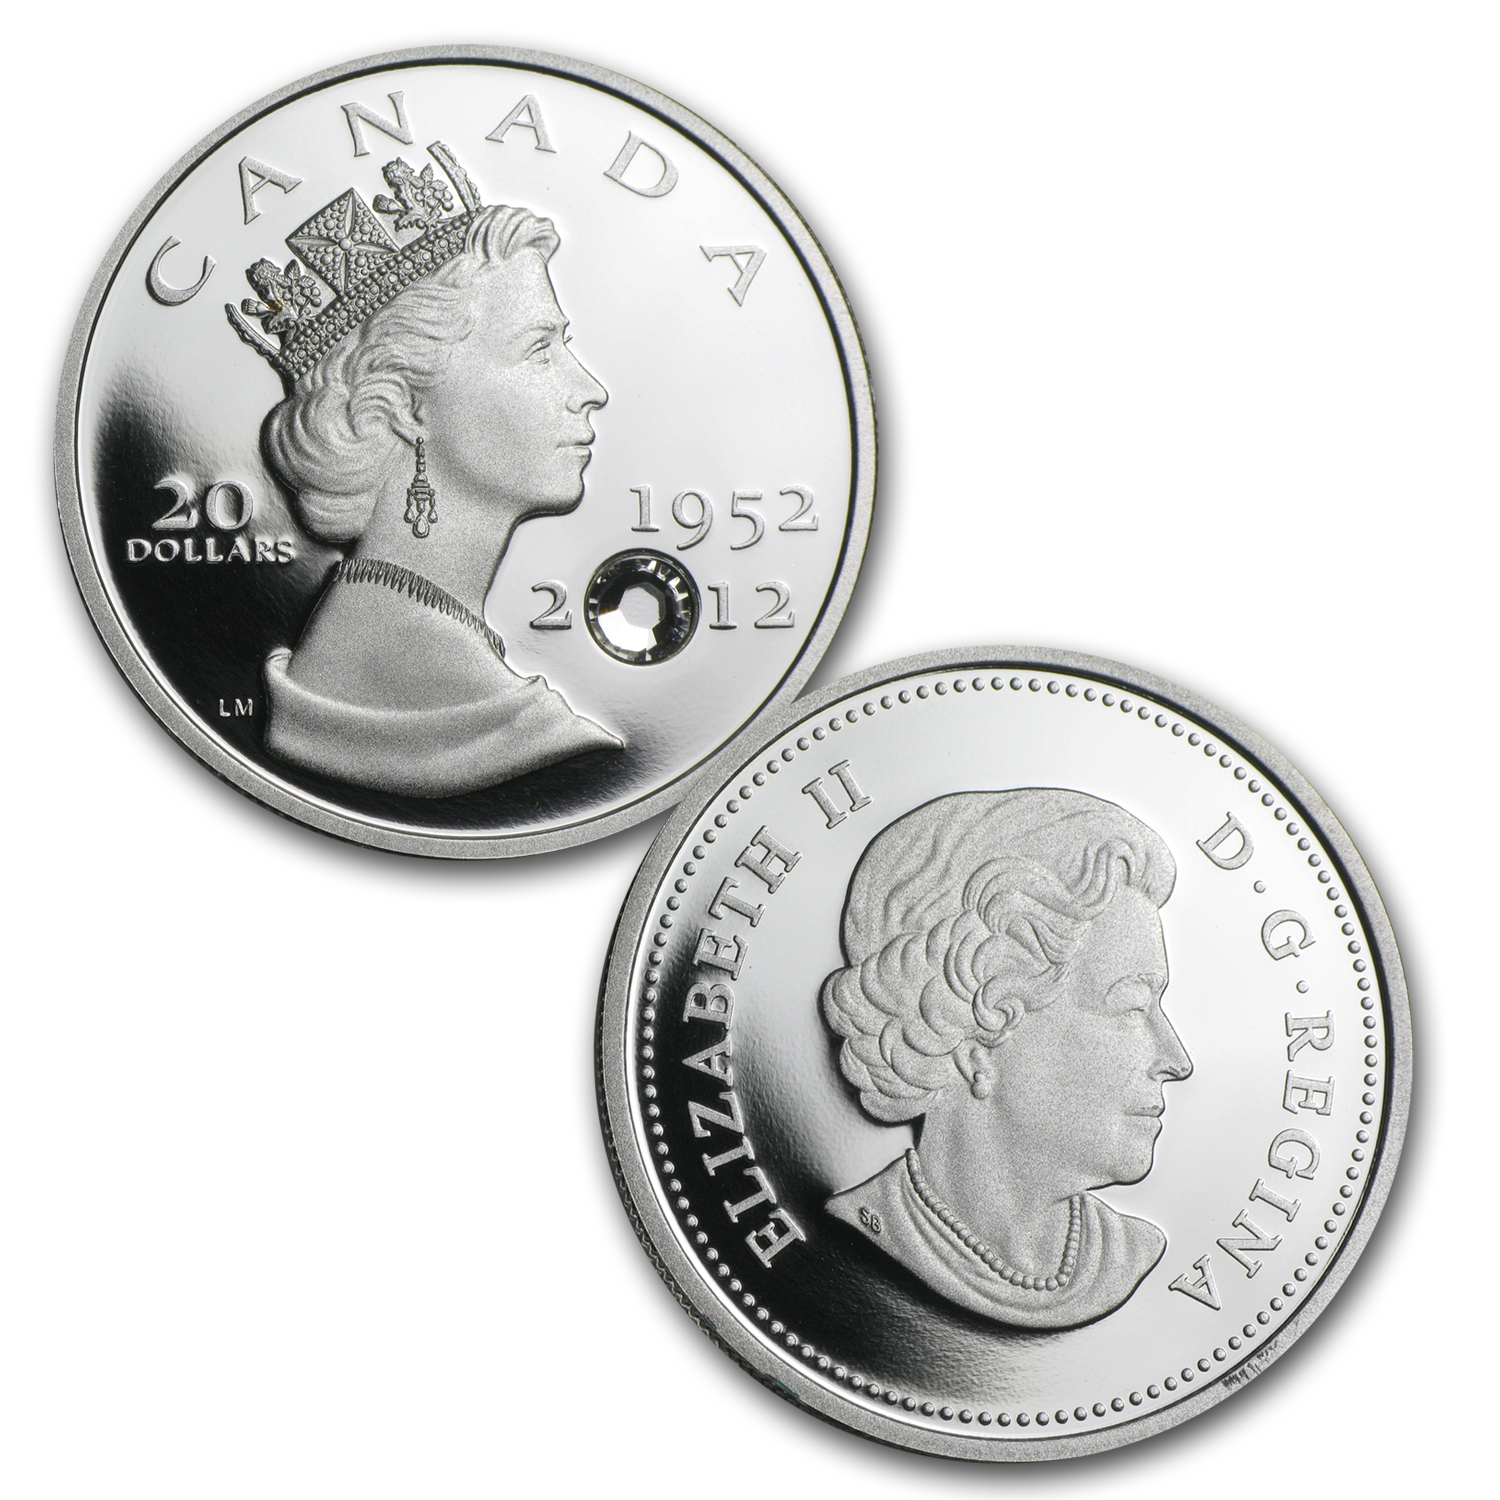 2012 Can 3-Coin 1 oz Silver $20 Diamond Jubilee 60th Anniv. Set